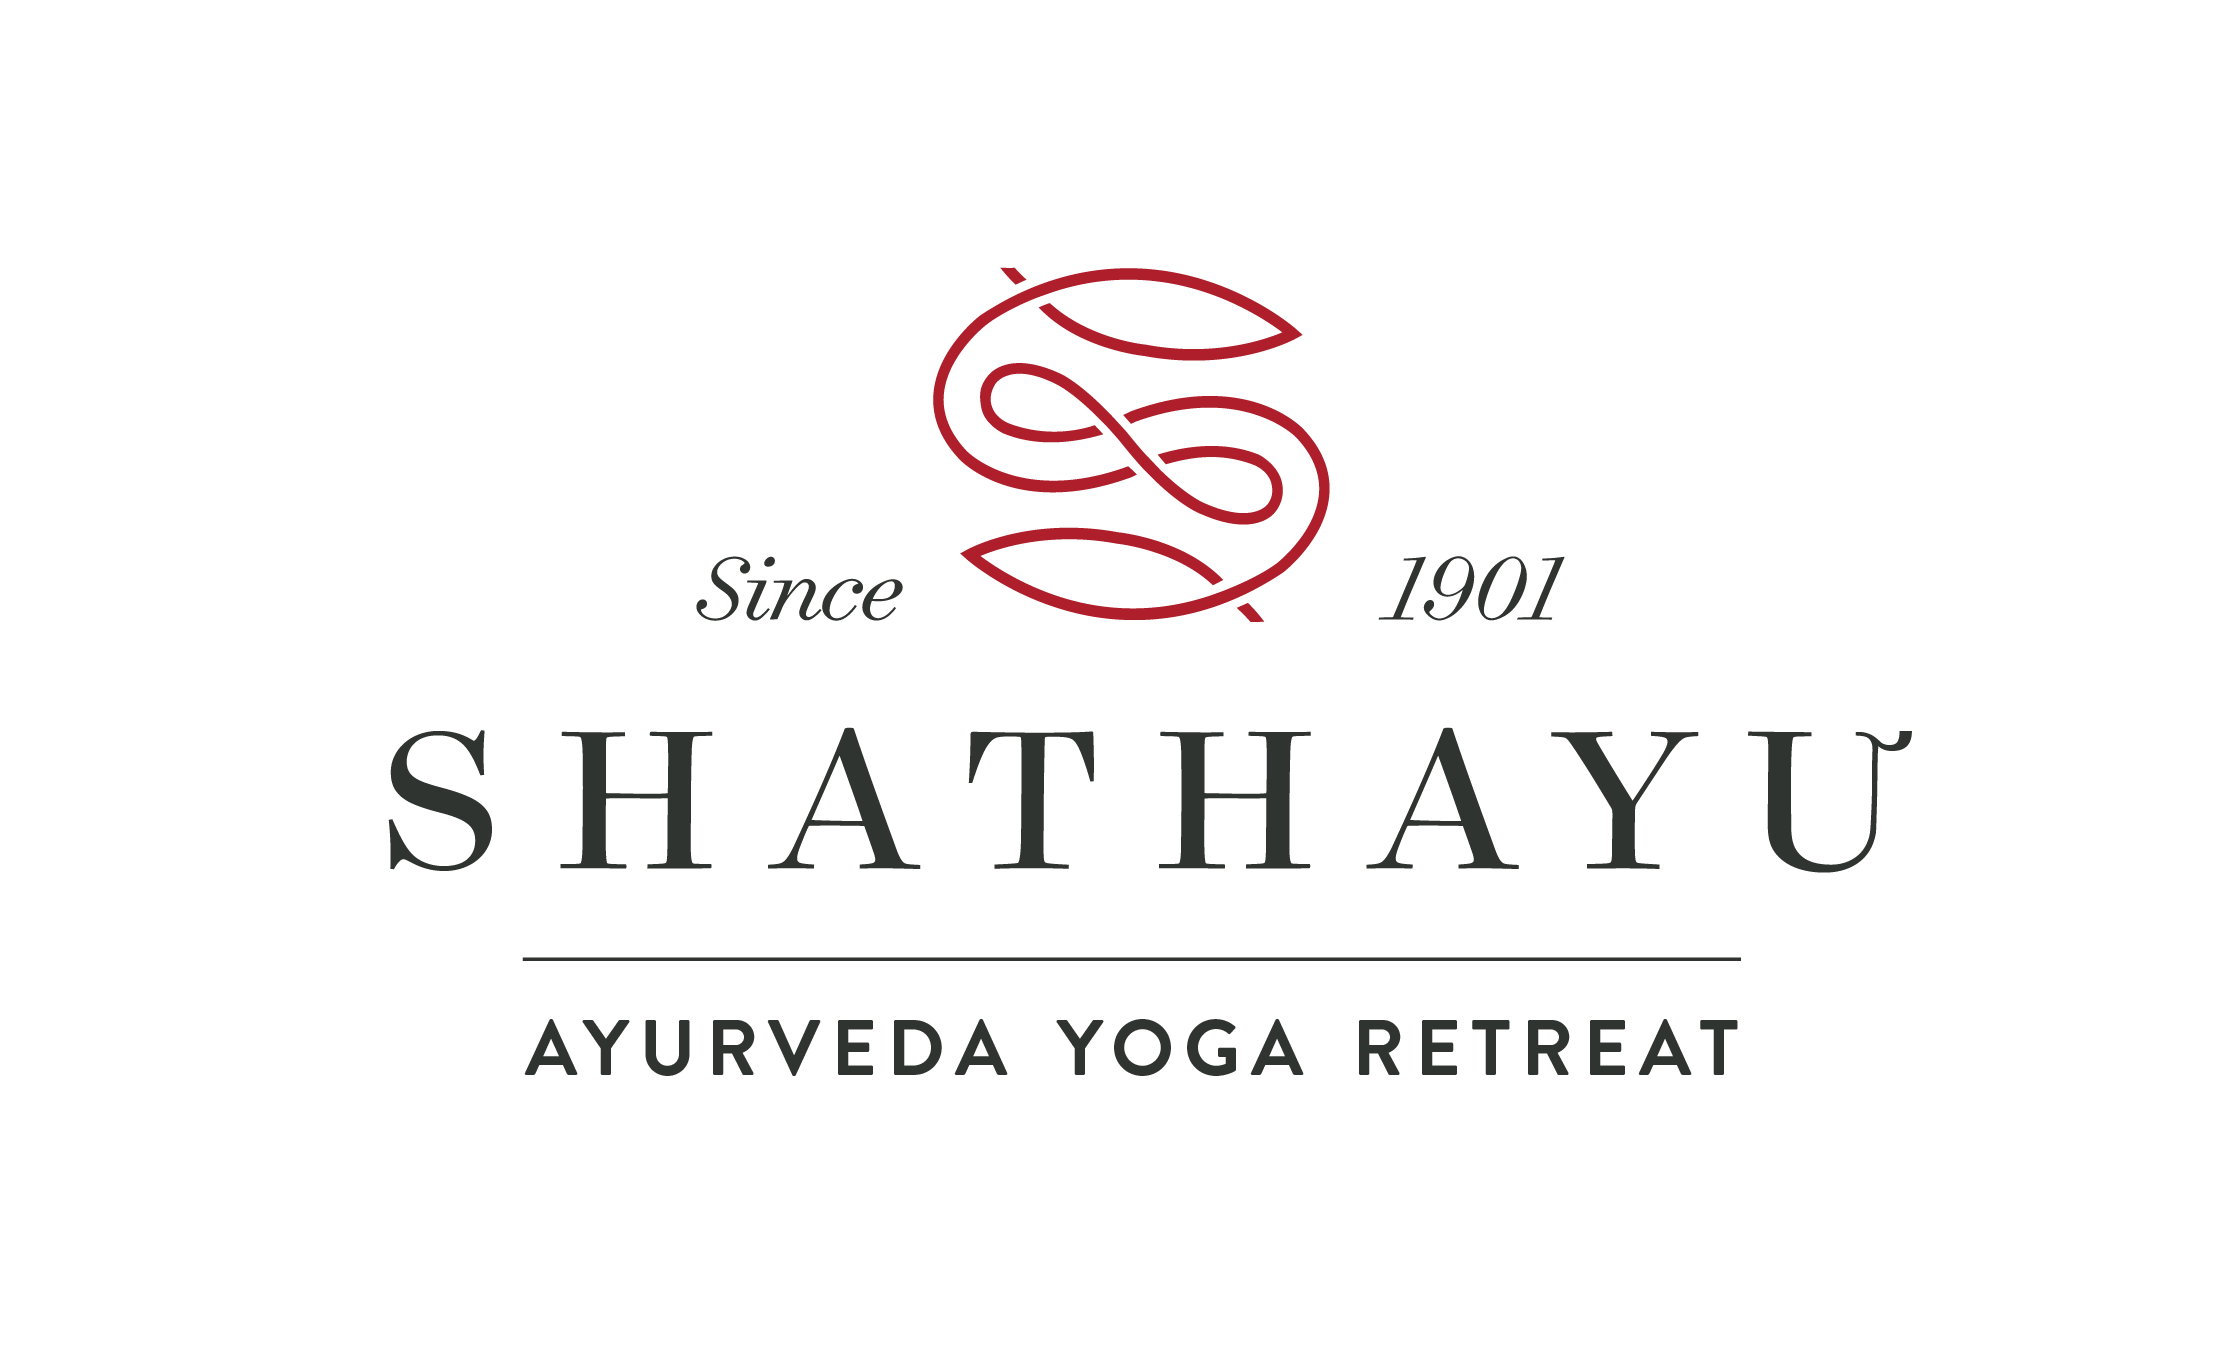 Shathayu Ayurveda Yoga Retreat